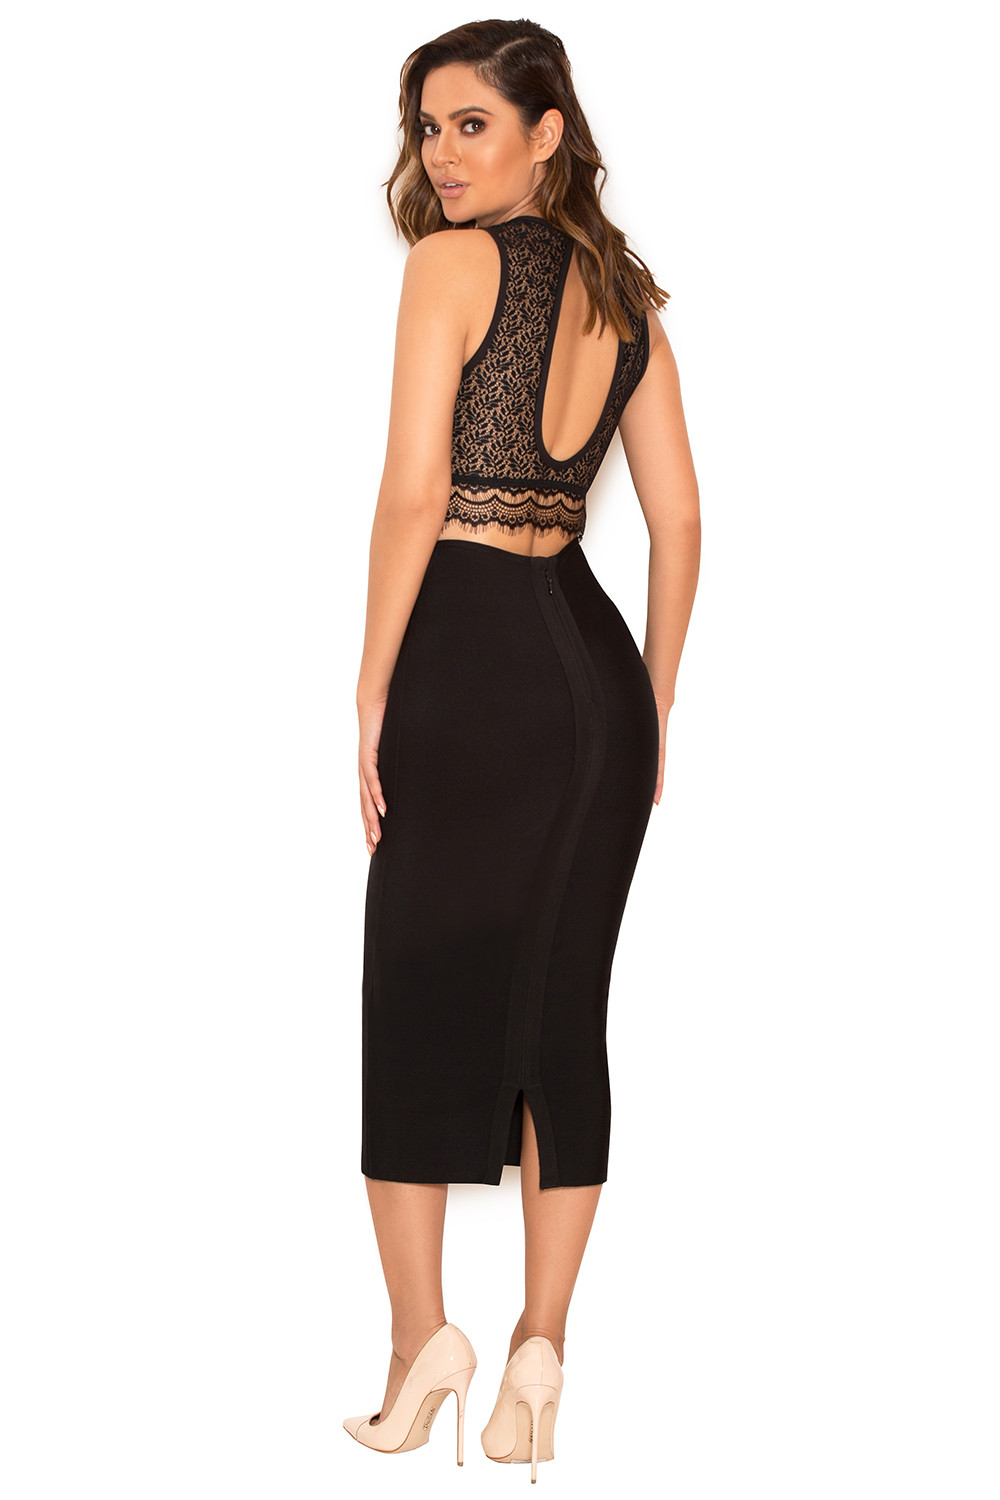 Clothing : Tops : 'Domina' Black Stretch Lace Cropped Top